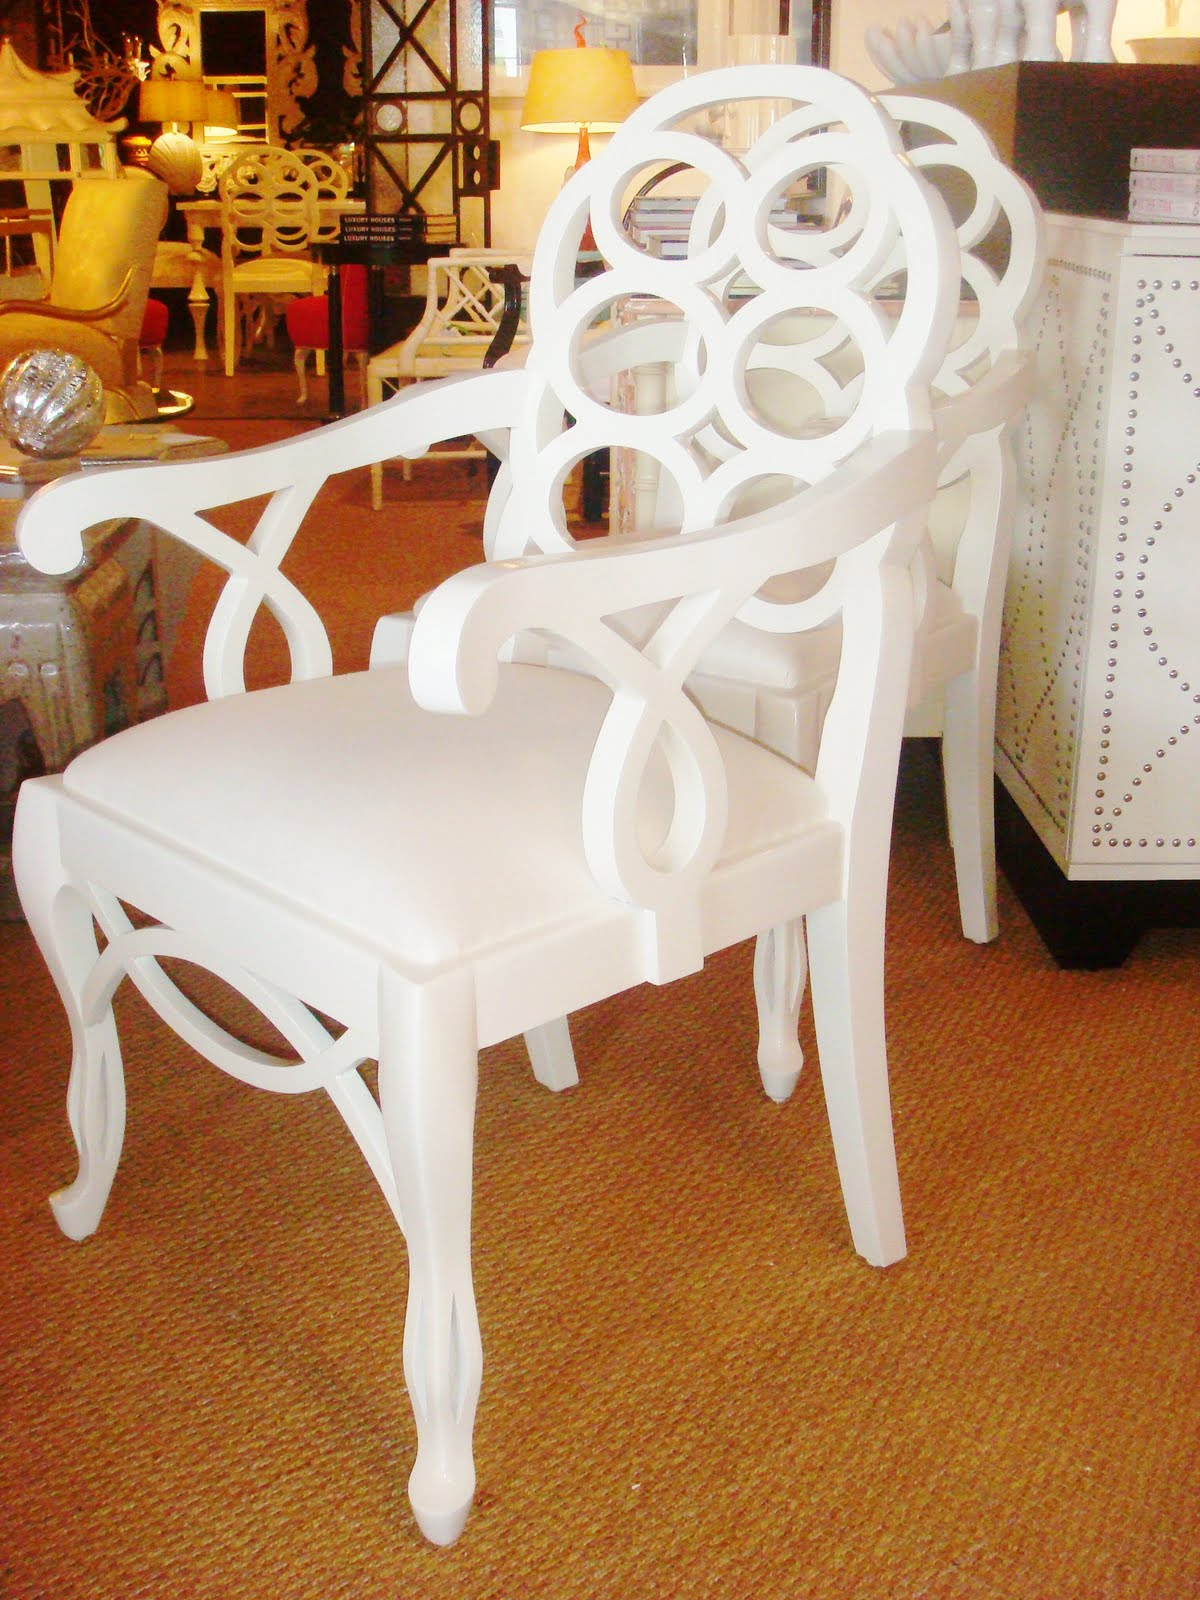 White Gloss Frances Elkins Loop Chair Reproduction